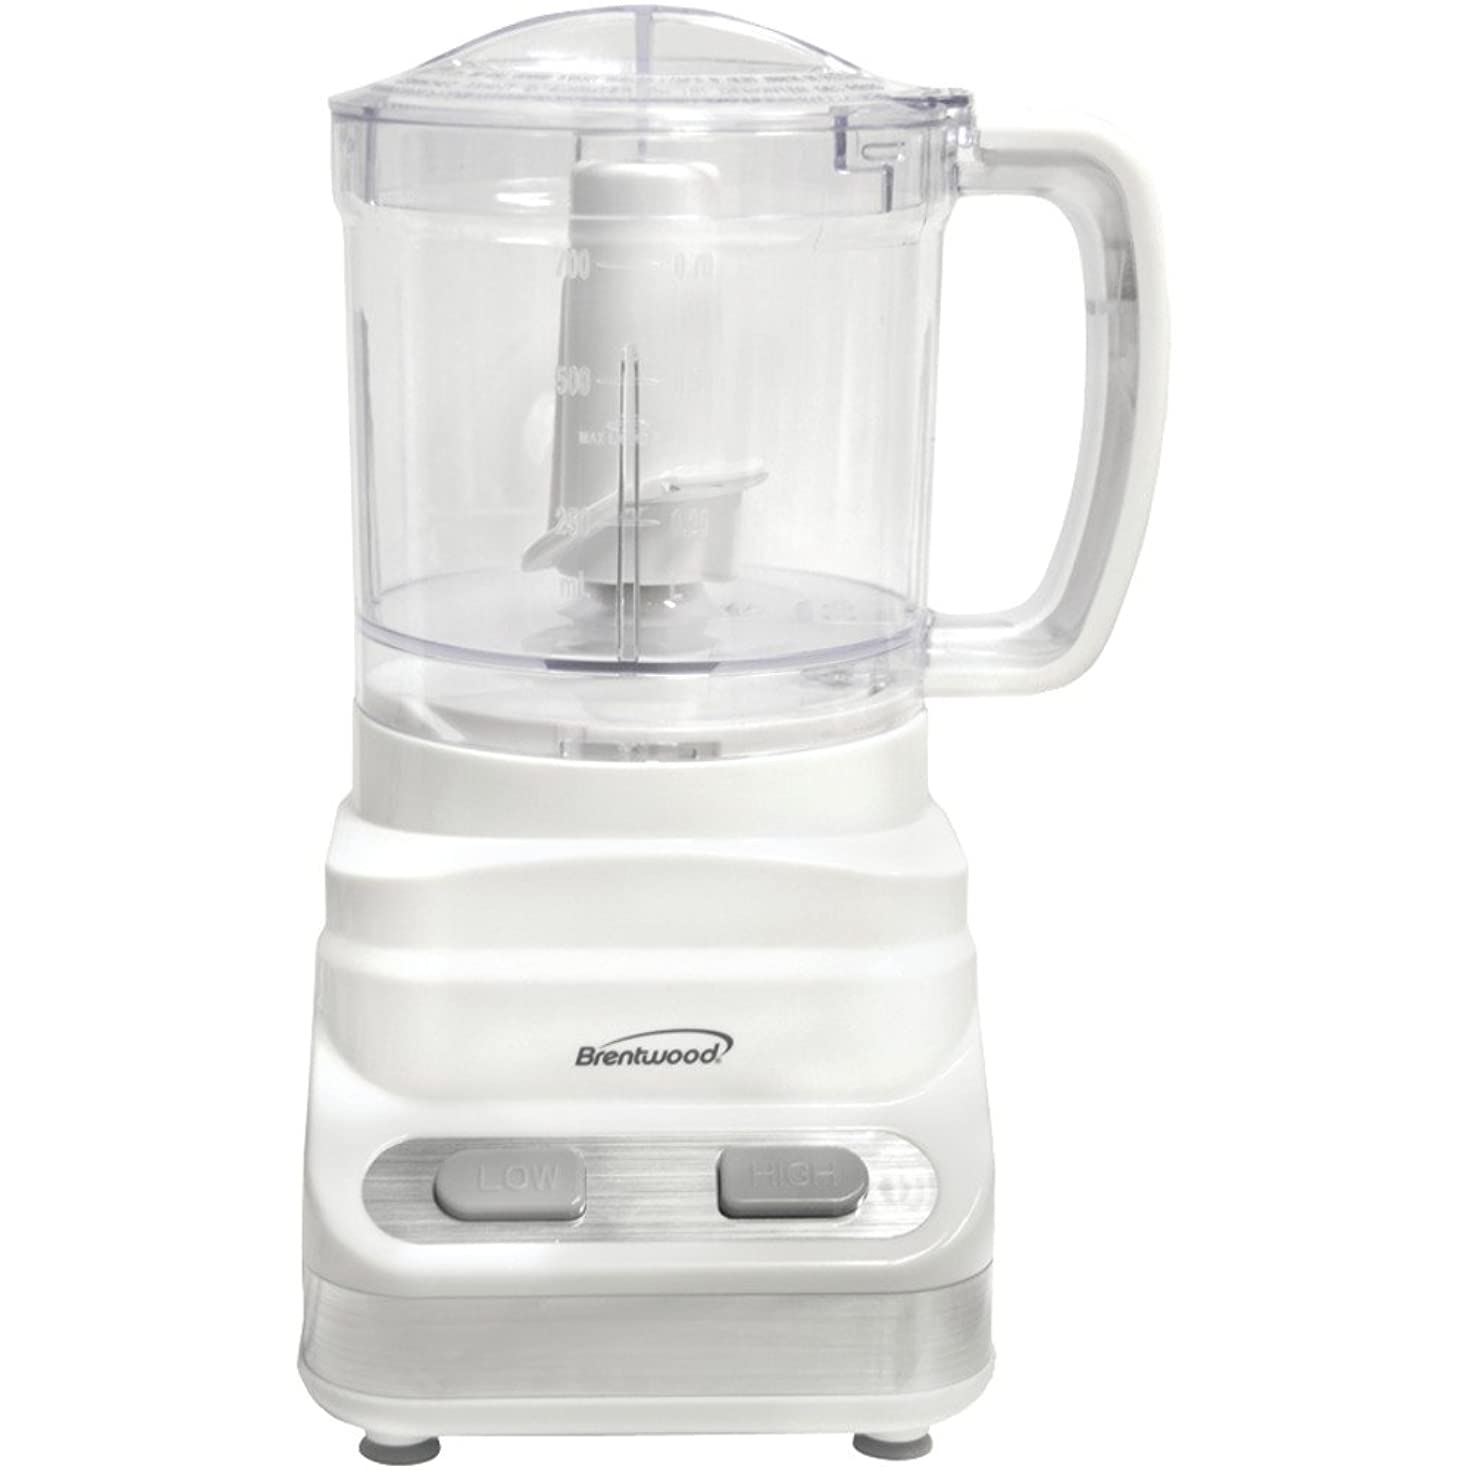 Brentwood FP-546 3 Cup Food Processor Electronic Consumer